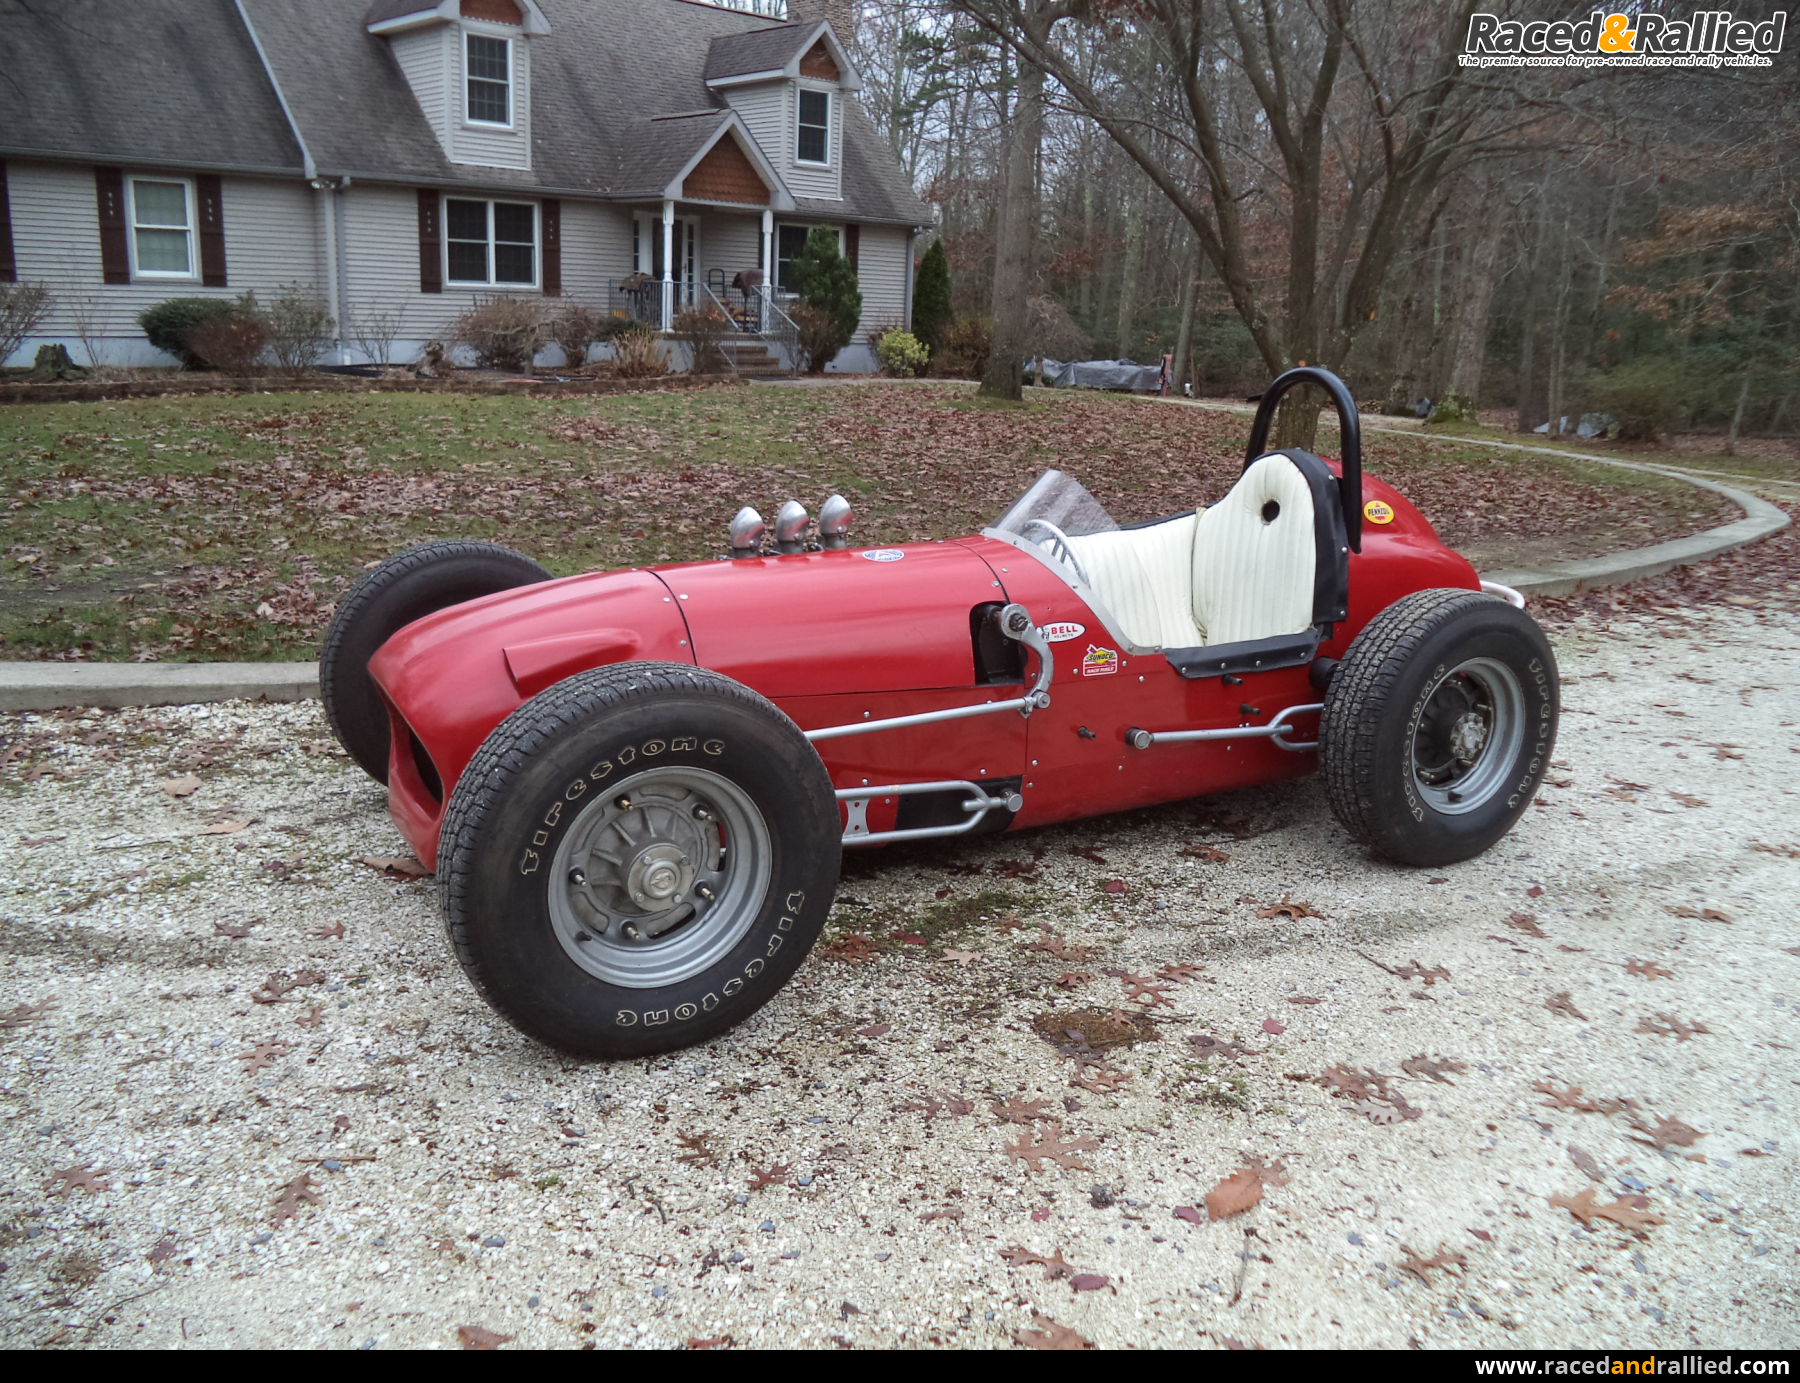 Race Cars for Sale Near Me New 1958 Sprint Car Vintage Race Car Paul Doody Special